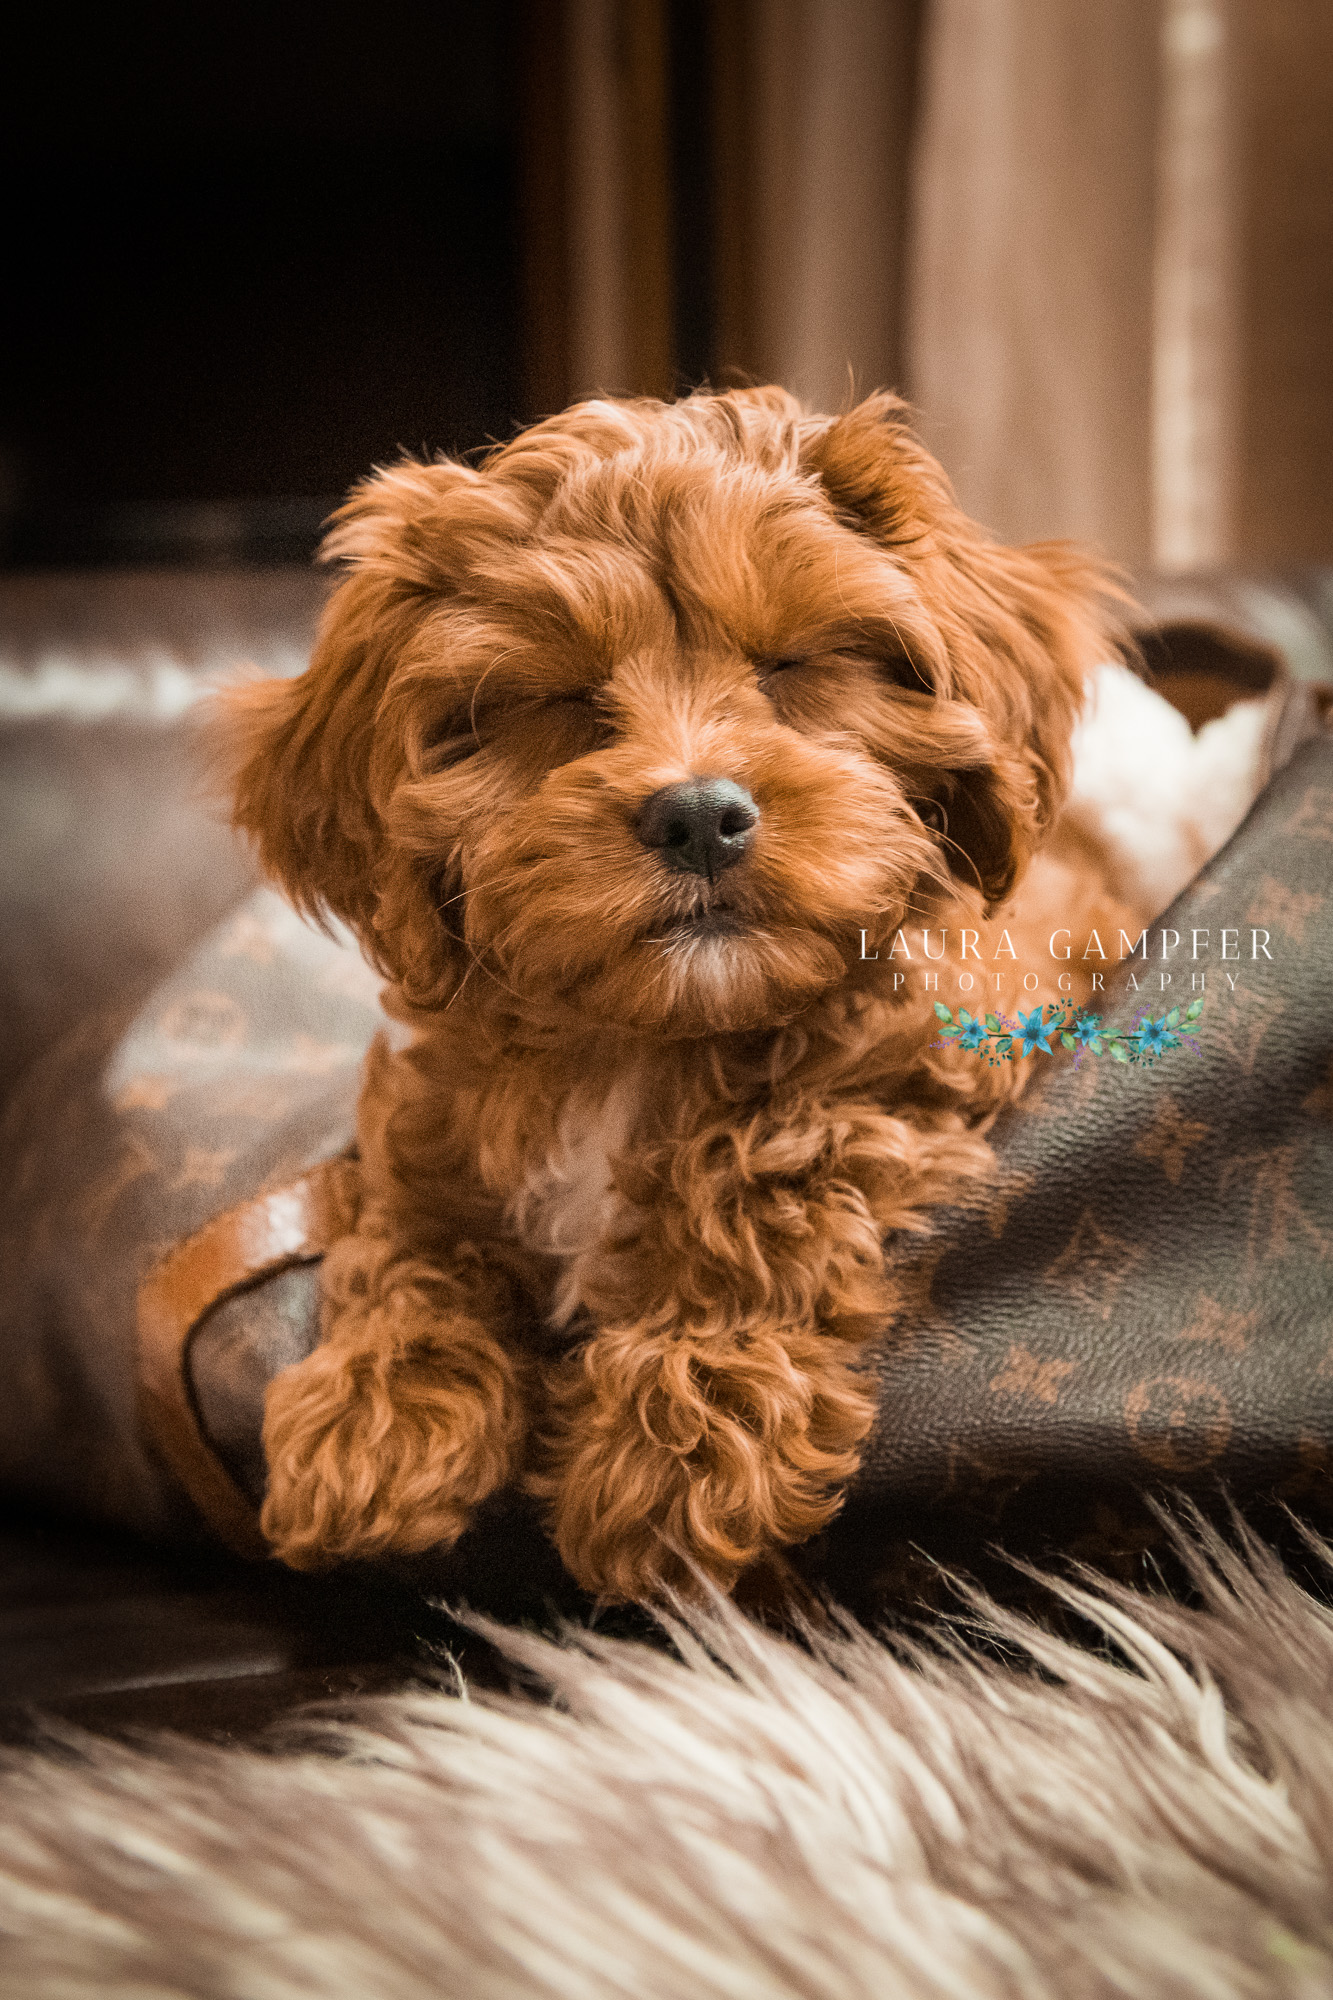 pet-photographer-kane-county-illinois-laura-gampfer-photography